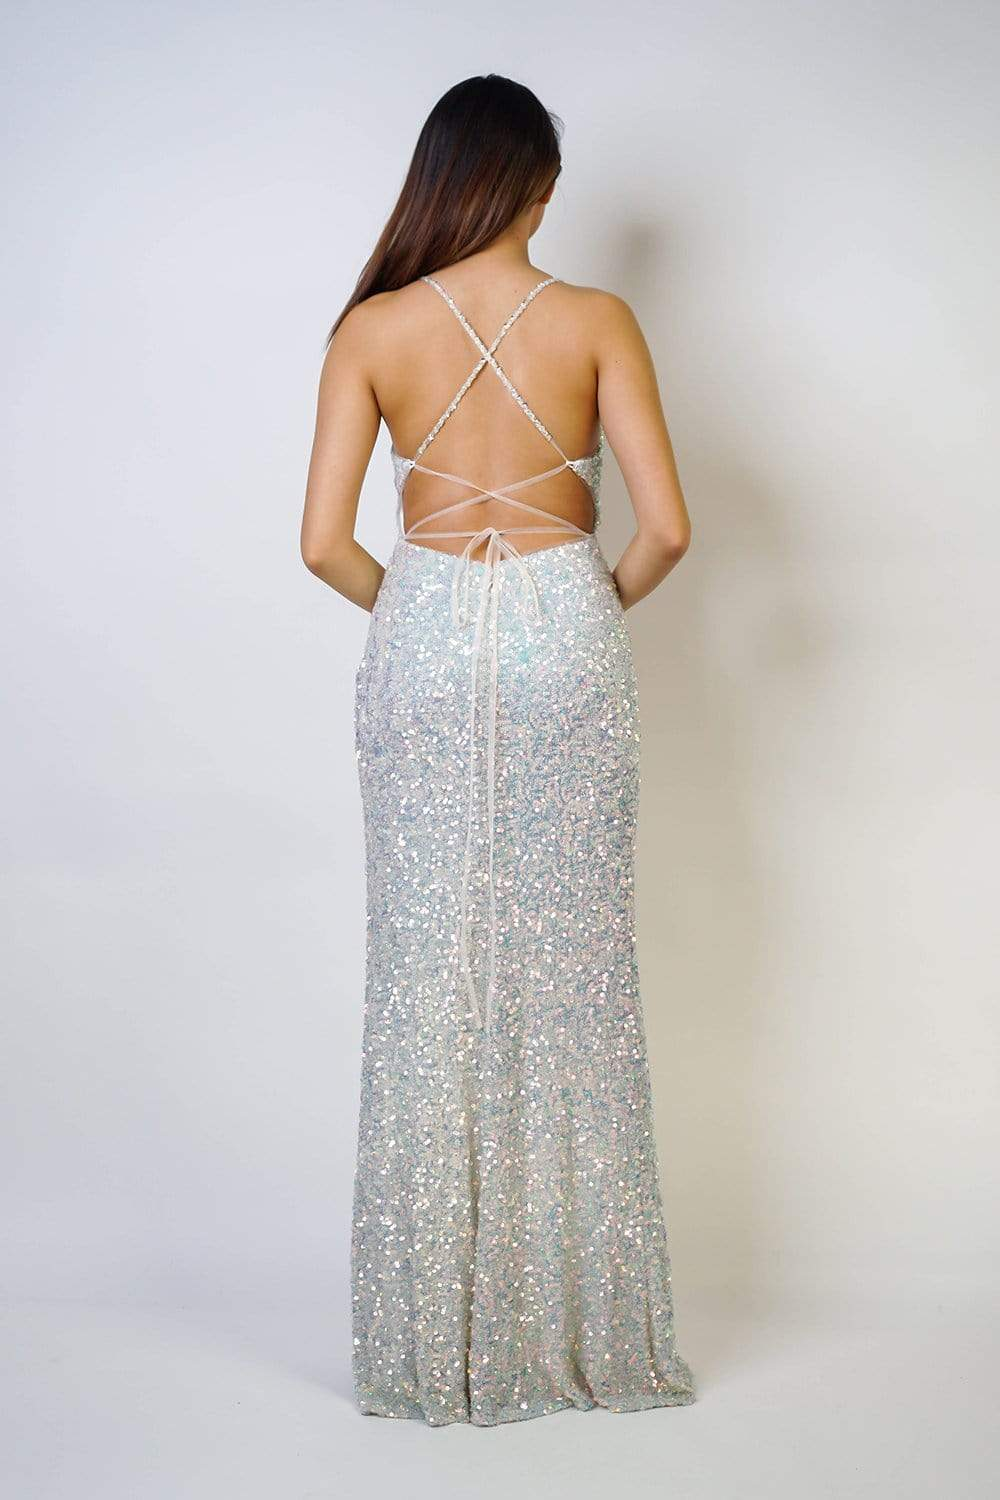 GOWN Opal Iridescent Sequin Fitted Gown - Chloe Dao